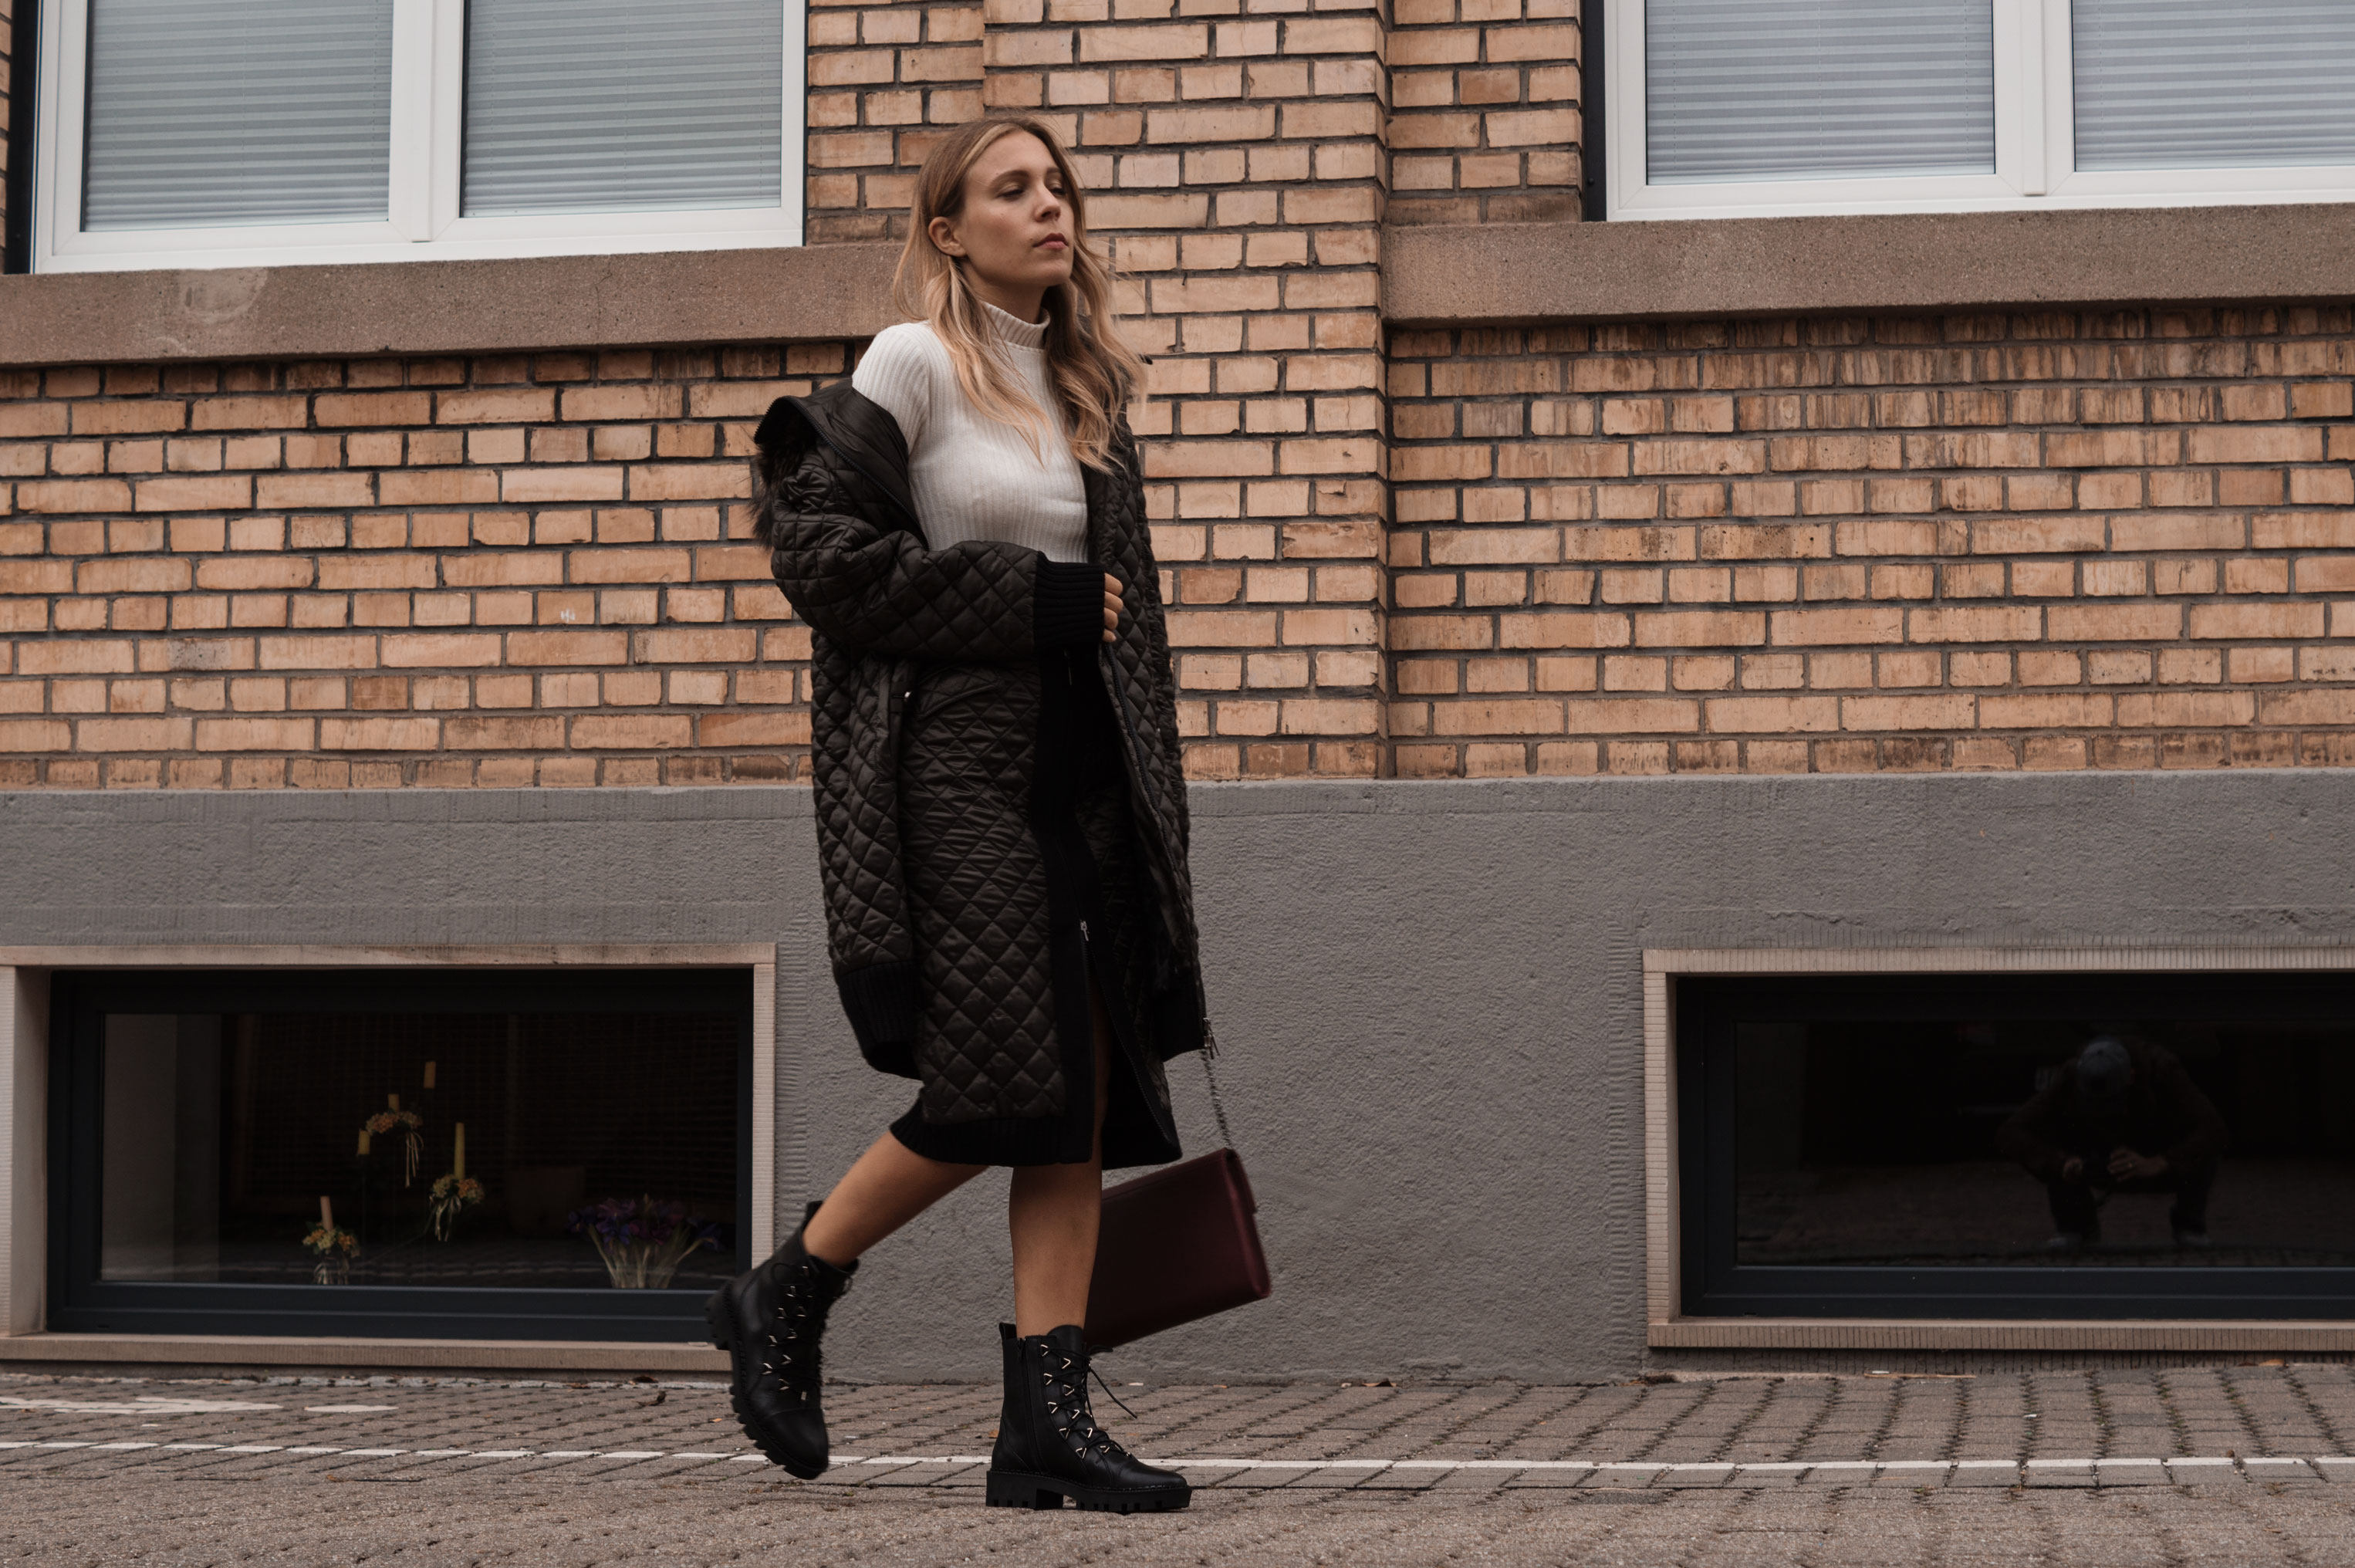 Coat Love Airfield Two Styles Coats Herbstjacke Fall Jacket Fall Outfit Herbstlook Sariety Fashionblogger Modeblog Heidelberg Boots Winter_4